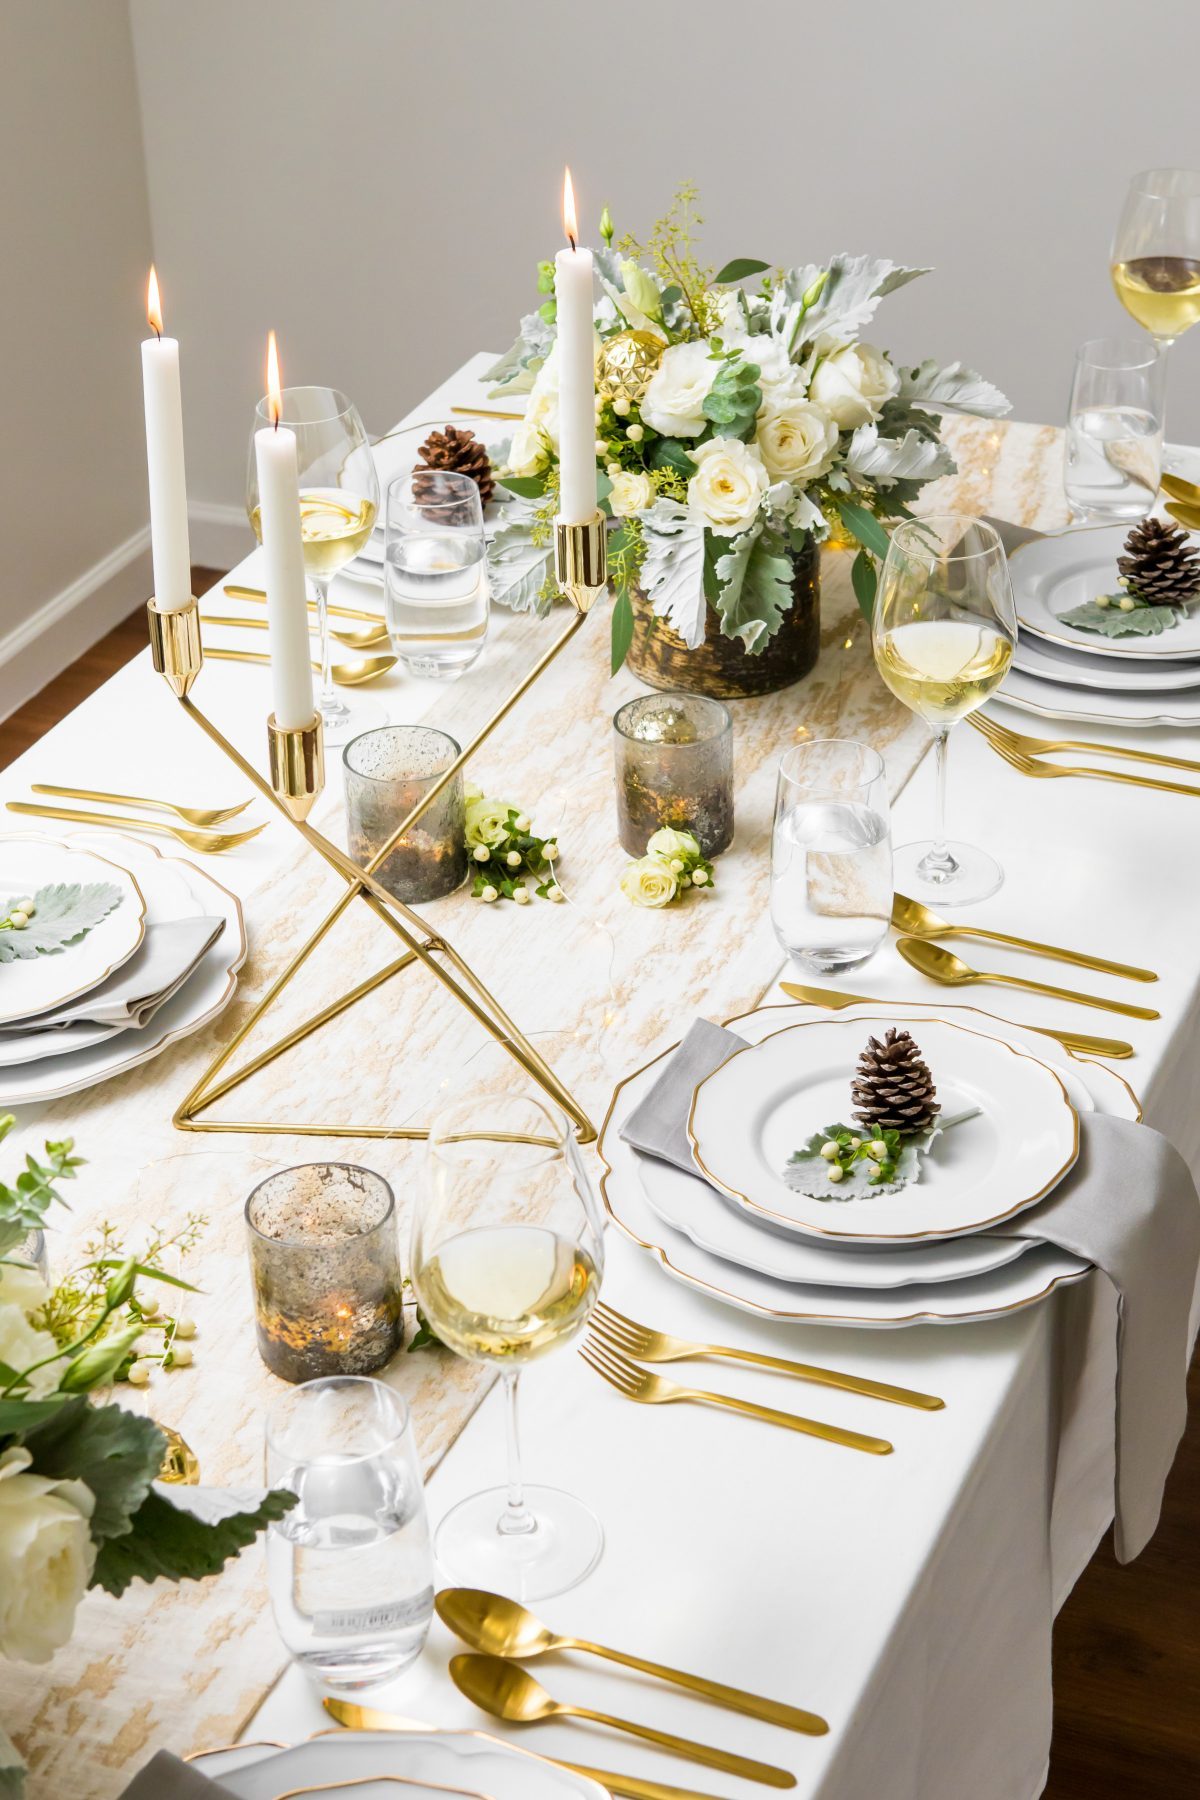 5D4B3931 - Tablescapes - Christmas-layer-linens